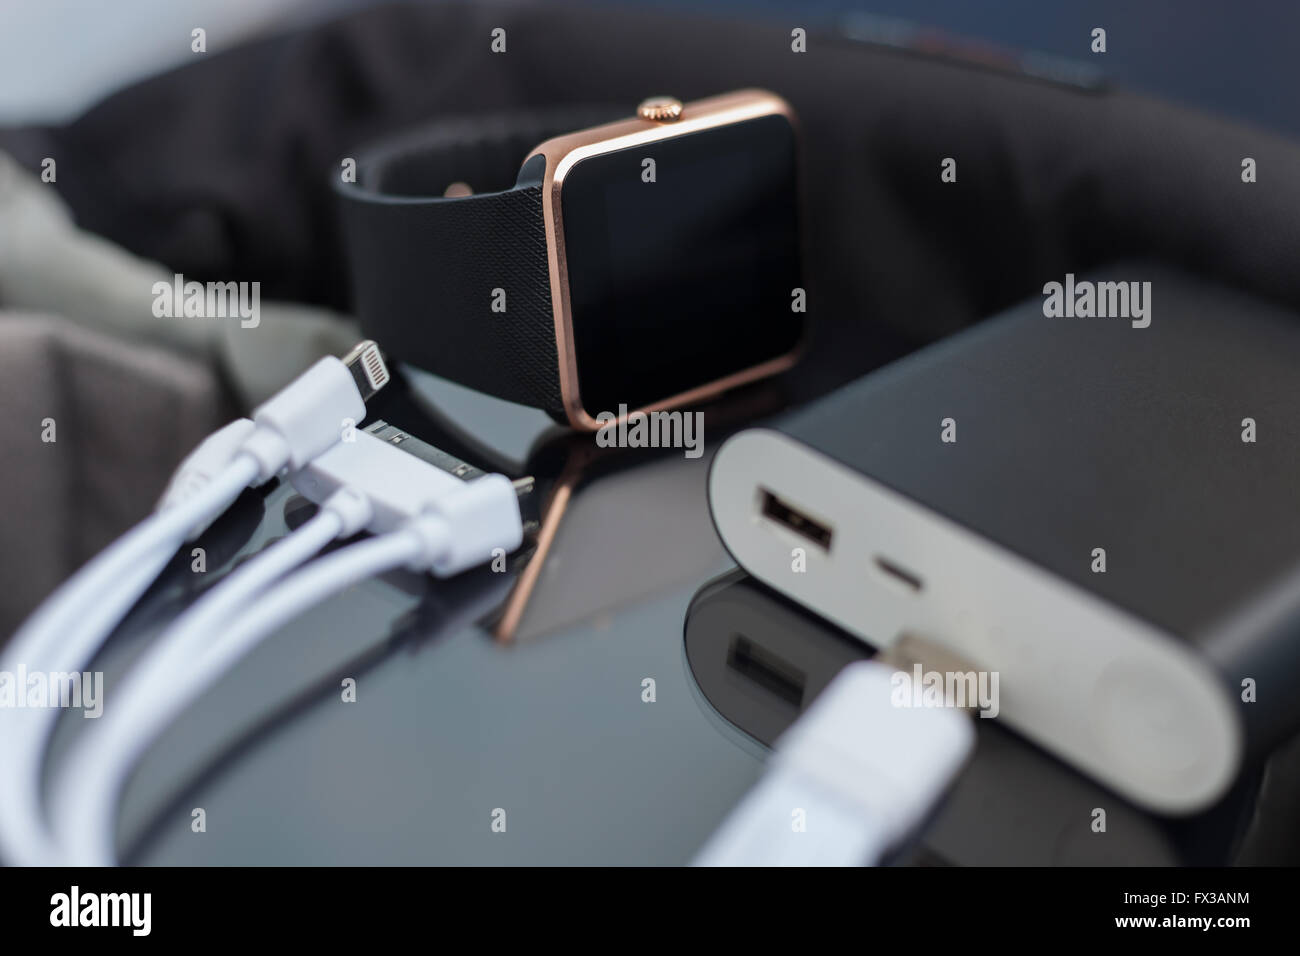 Travel charger and smart wrist watch and cable management for charge. This portable devices will let you stay connected - Stock Image